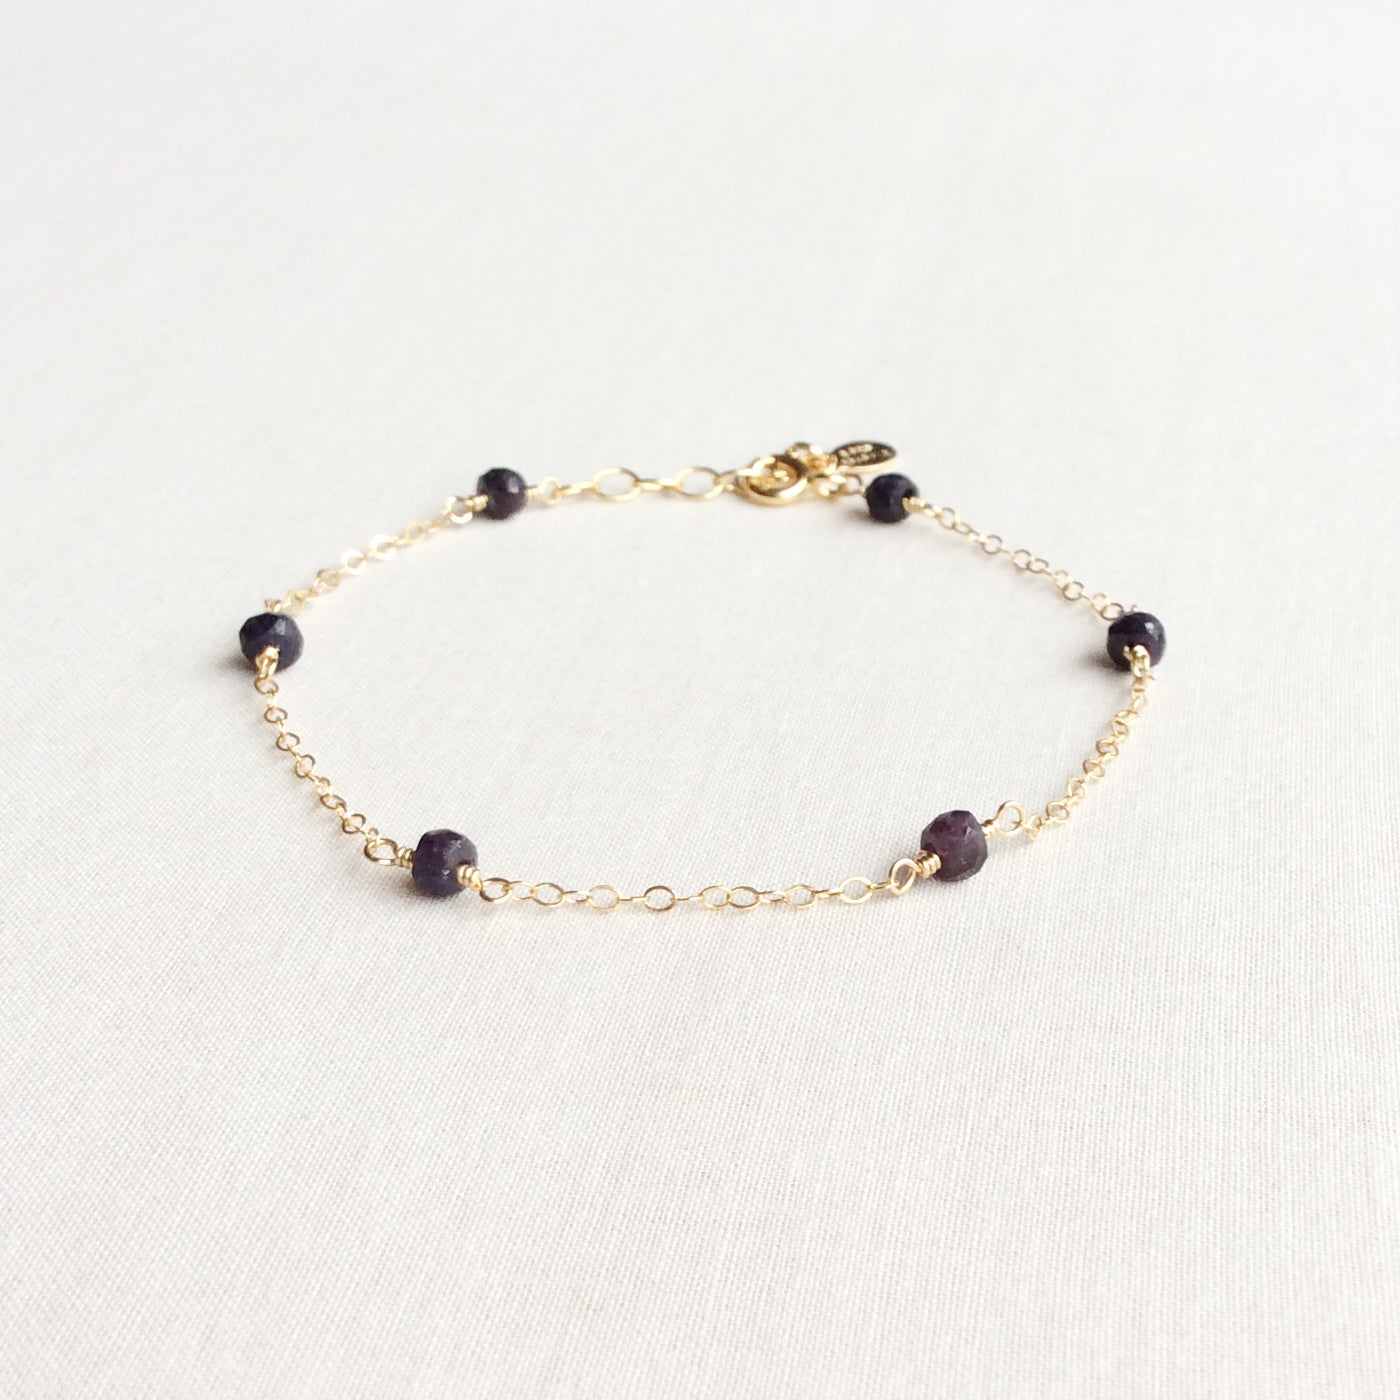 genuine 14k gold sapphire bracelet with adjustable chain in 14k or gold filled